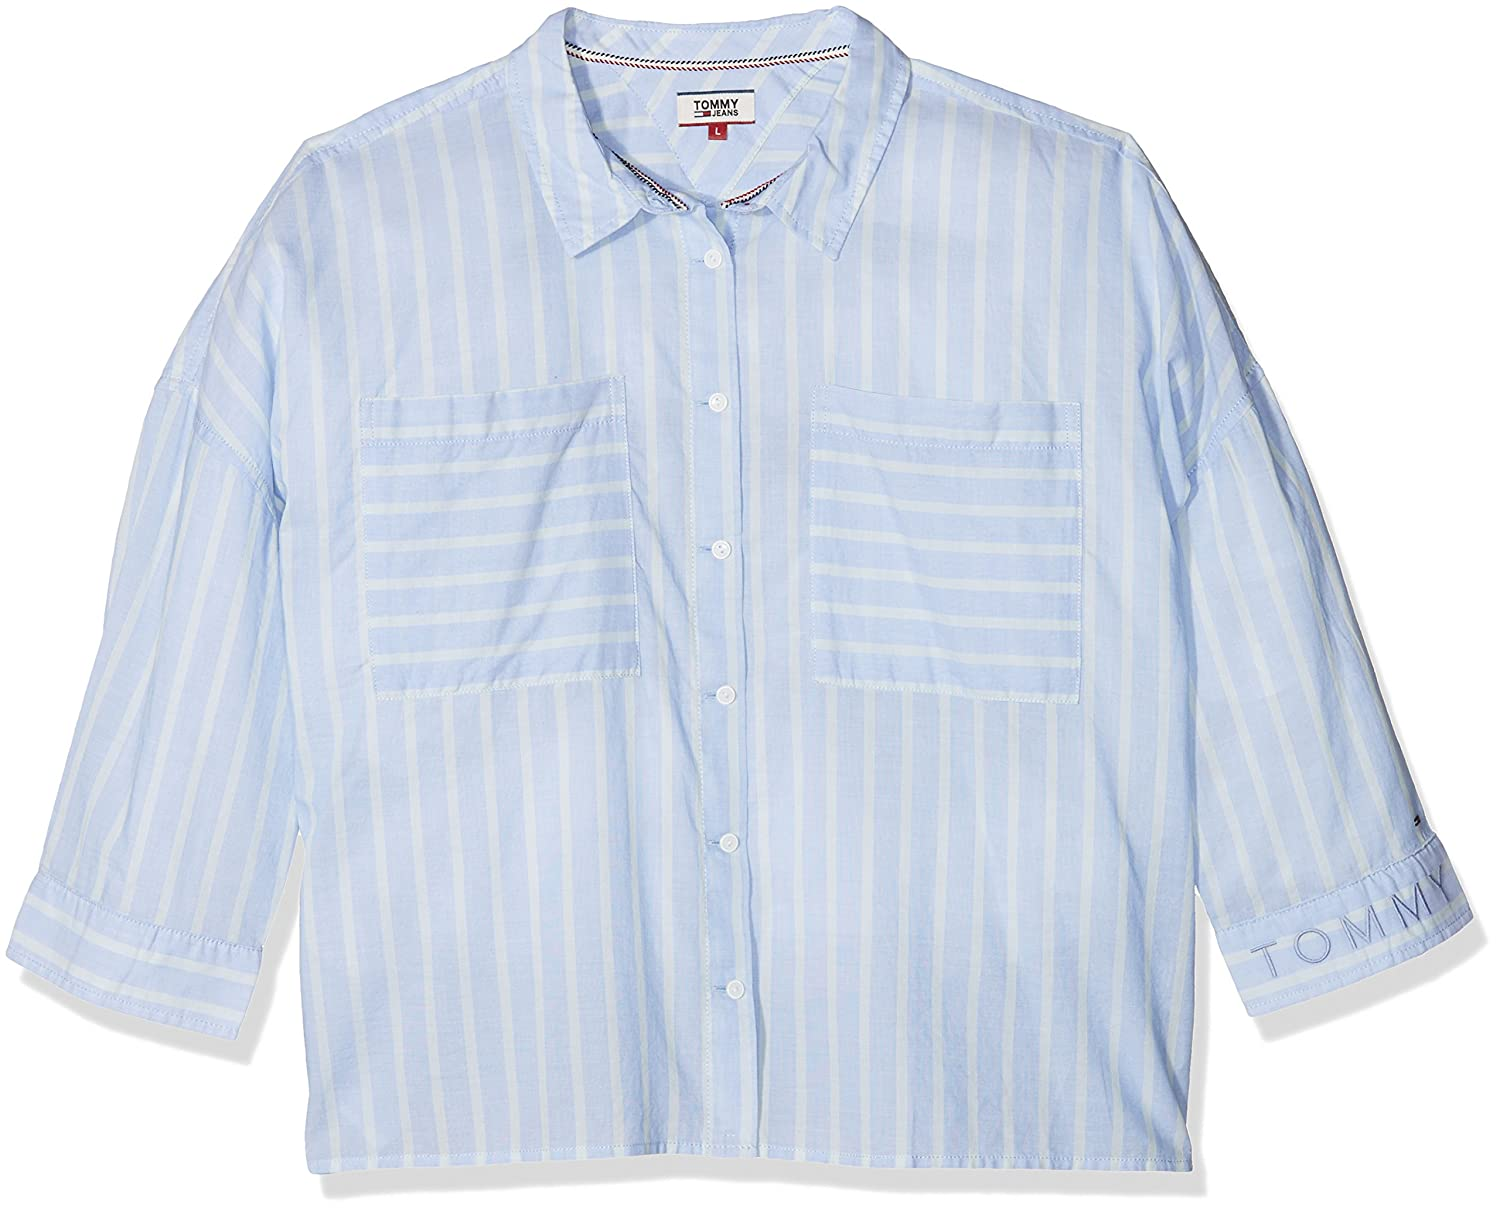 Tommy Jeans Mujer Tommy Shirt Blusa Manga 3/4 Normal